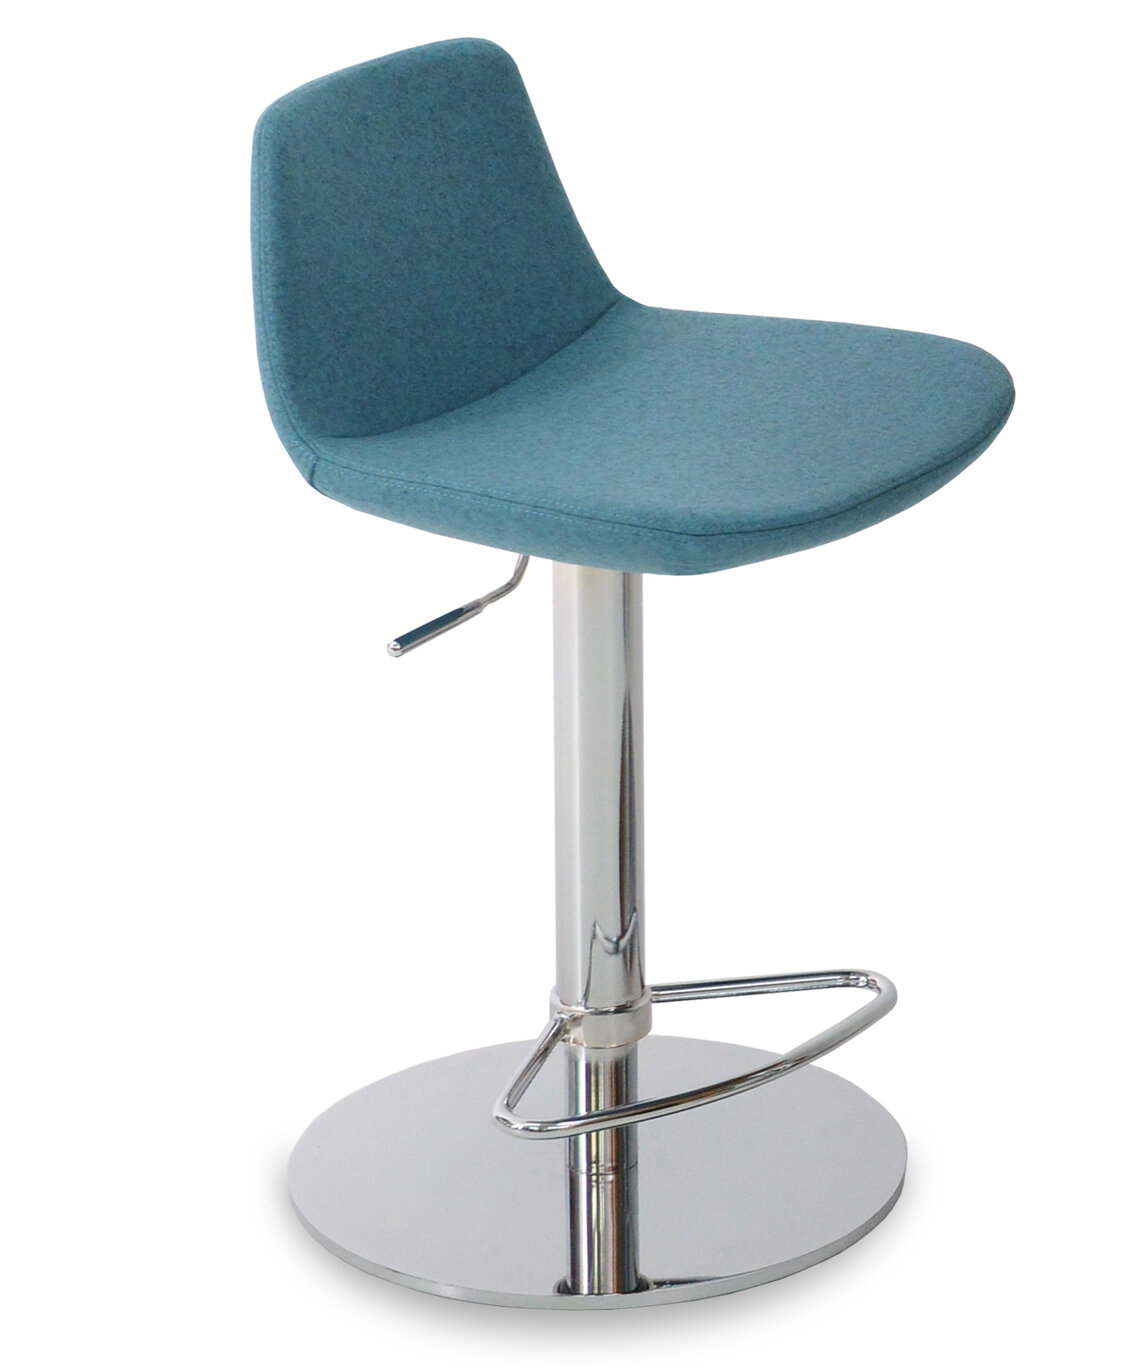 sohoConcept Pera Piston Adjustable Height Bar Stool Color: Black, Upholstery: Leather, Finish: Stainless Steel